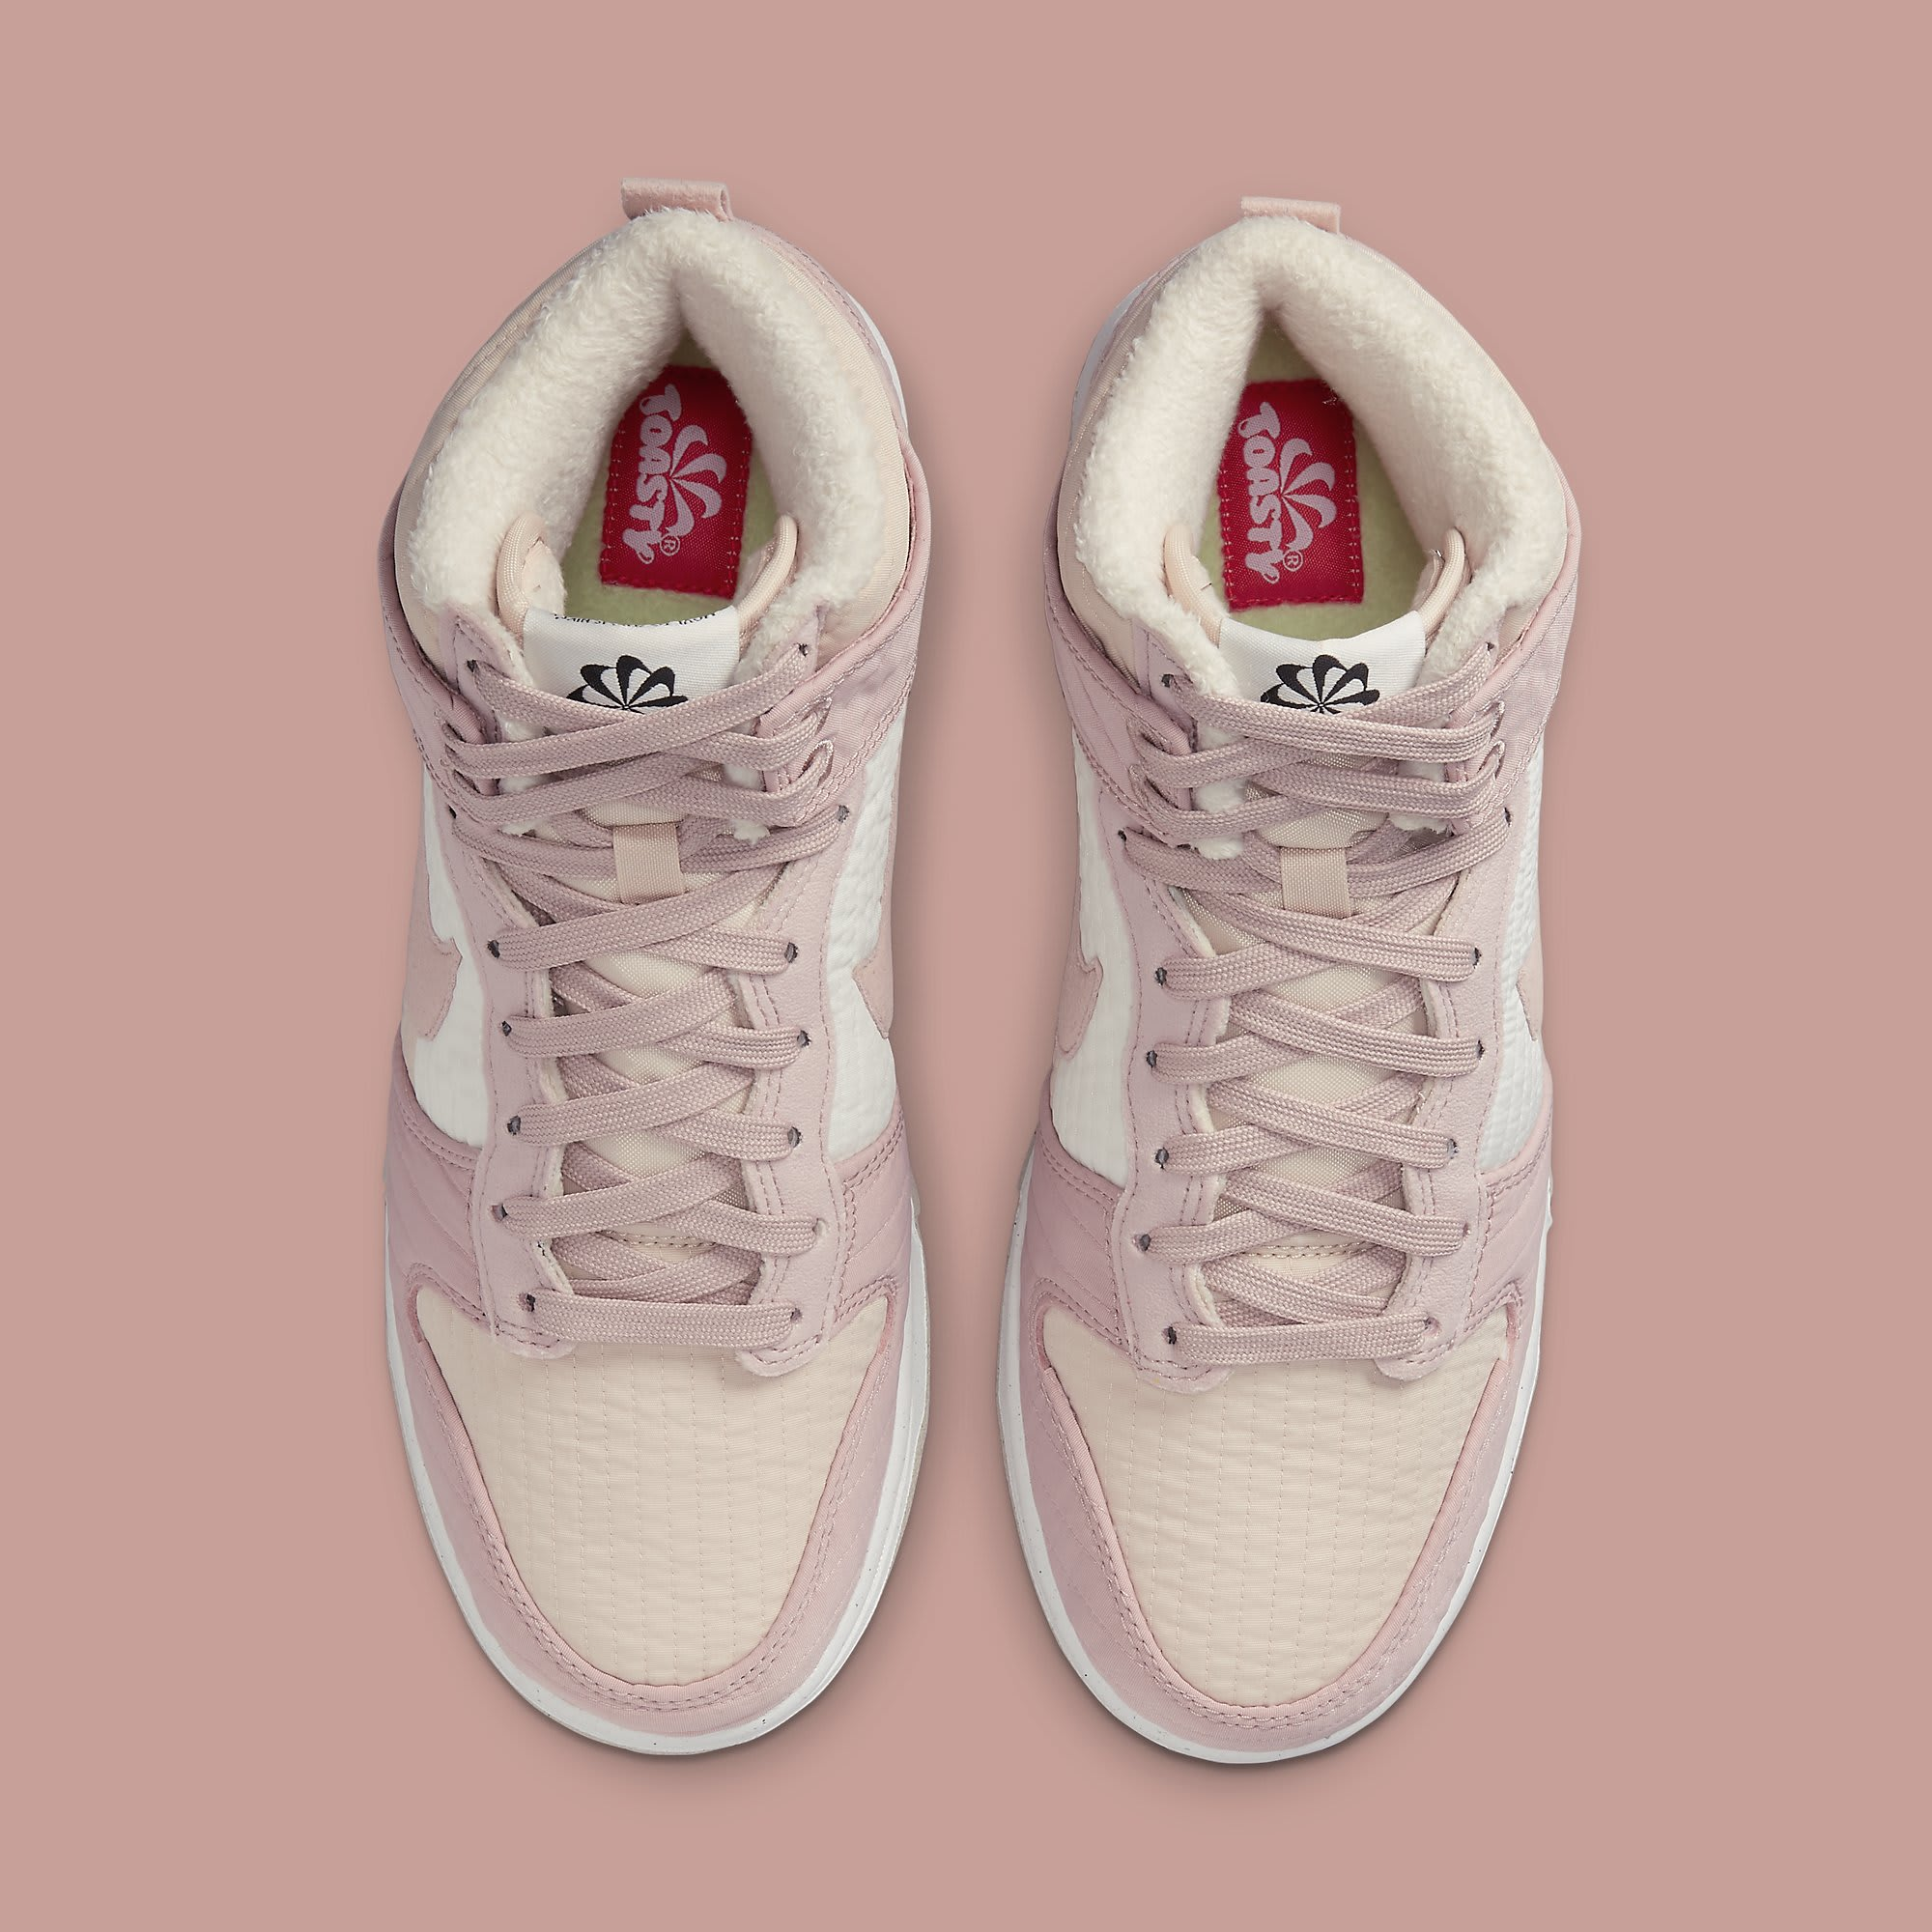 Nike Dunk High Toasty Pink DN9909-200 Release Date Top